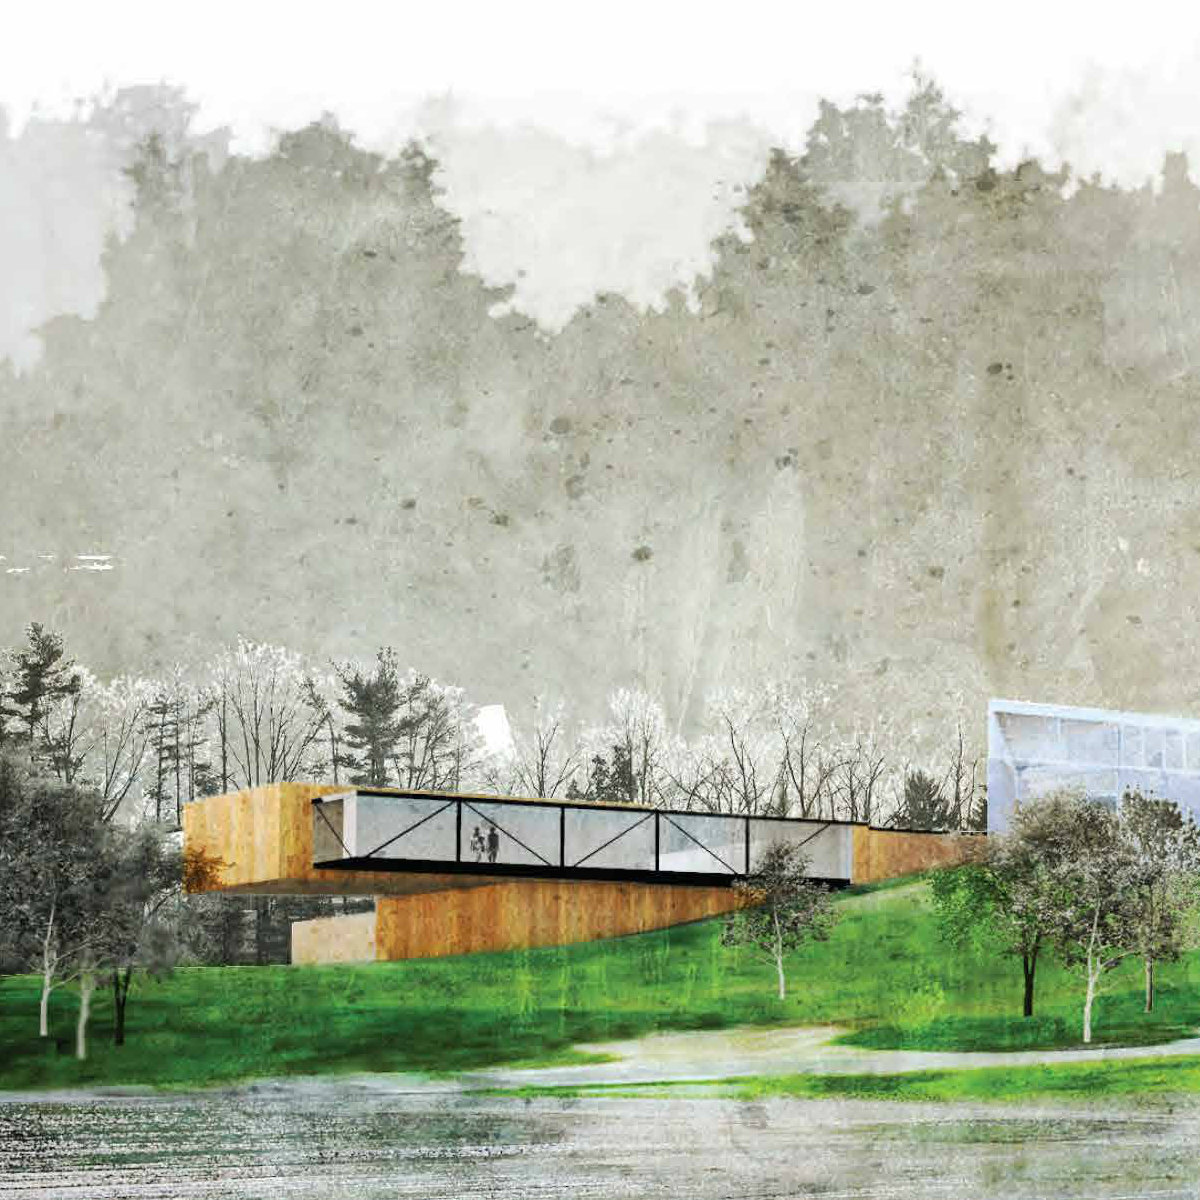 rendering of an art museum near a body of water